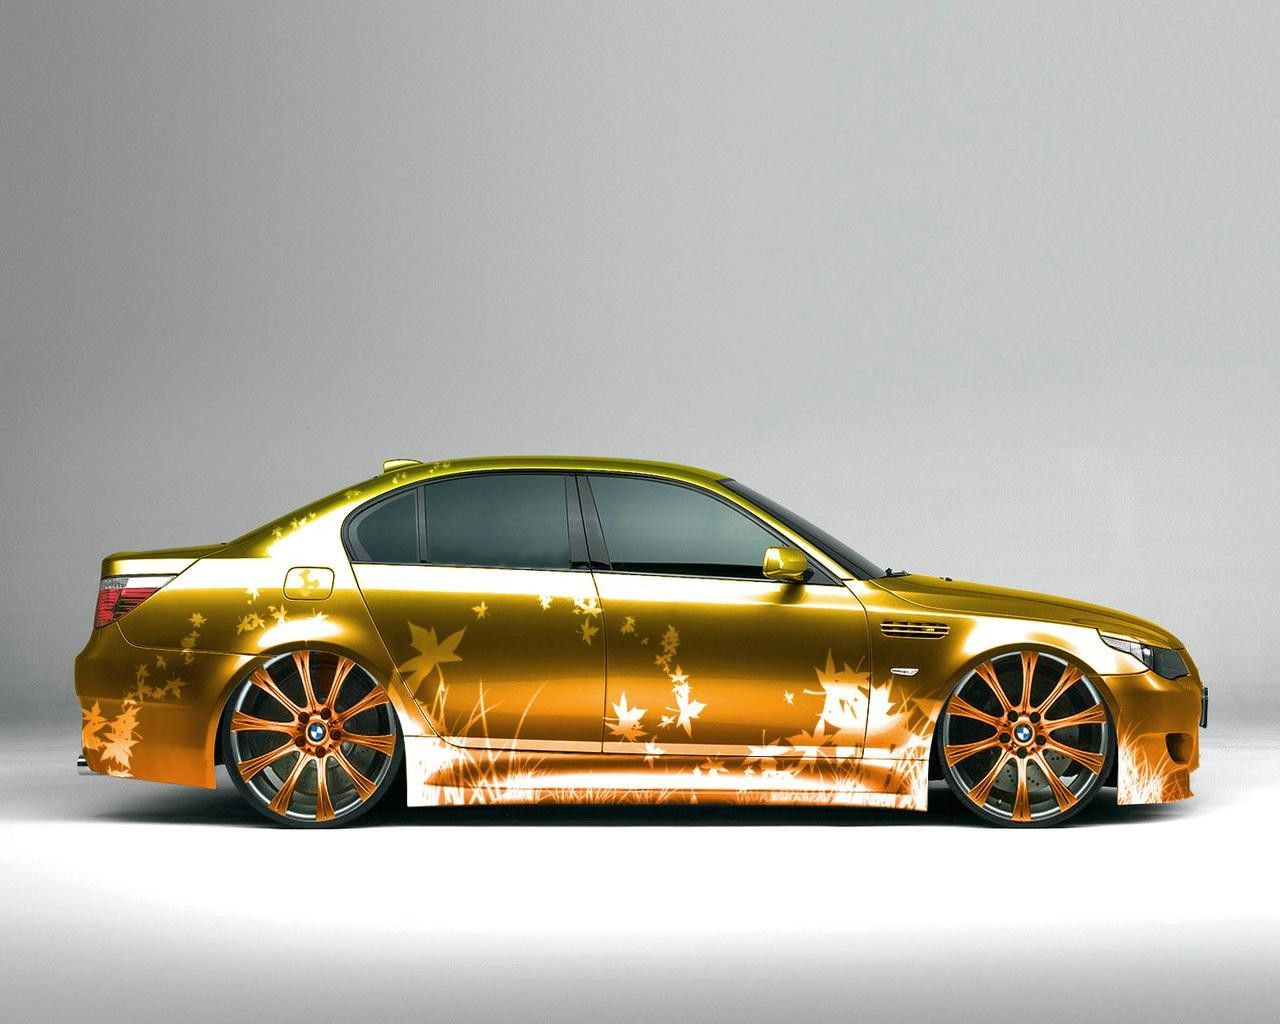 Bmw M5 Customized Paint Job Here S Something You Don T See Every Day Car Wallpapers Bmw Car Painting